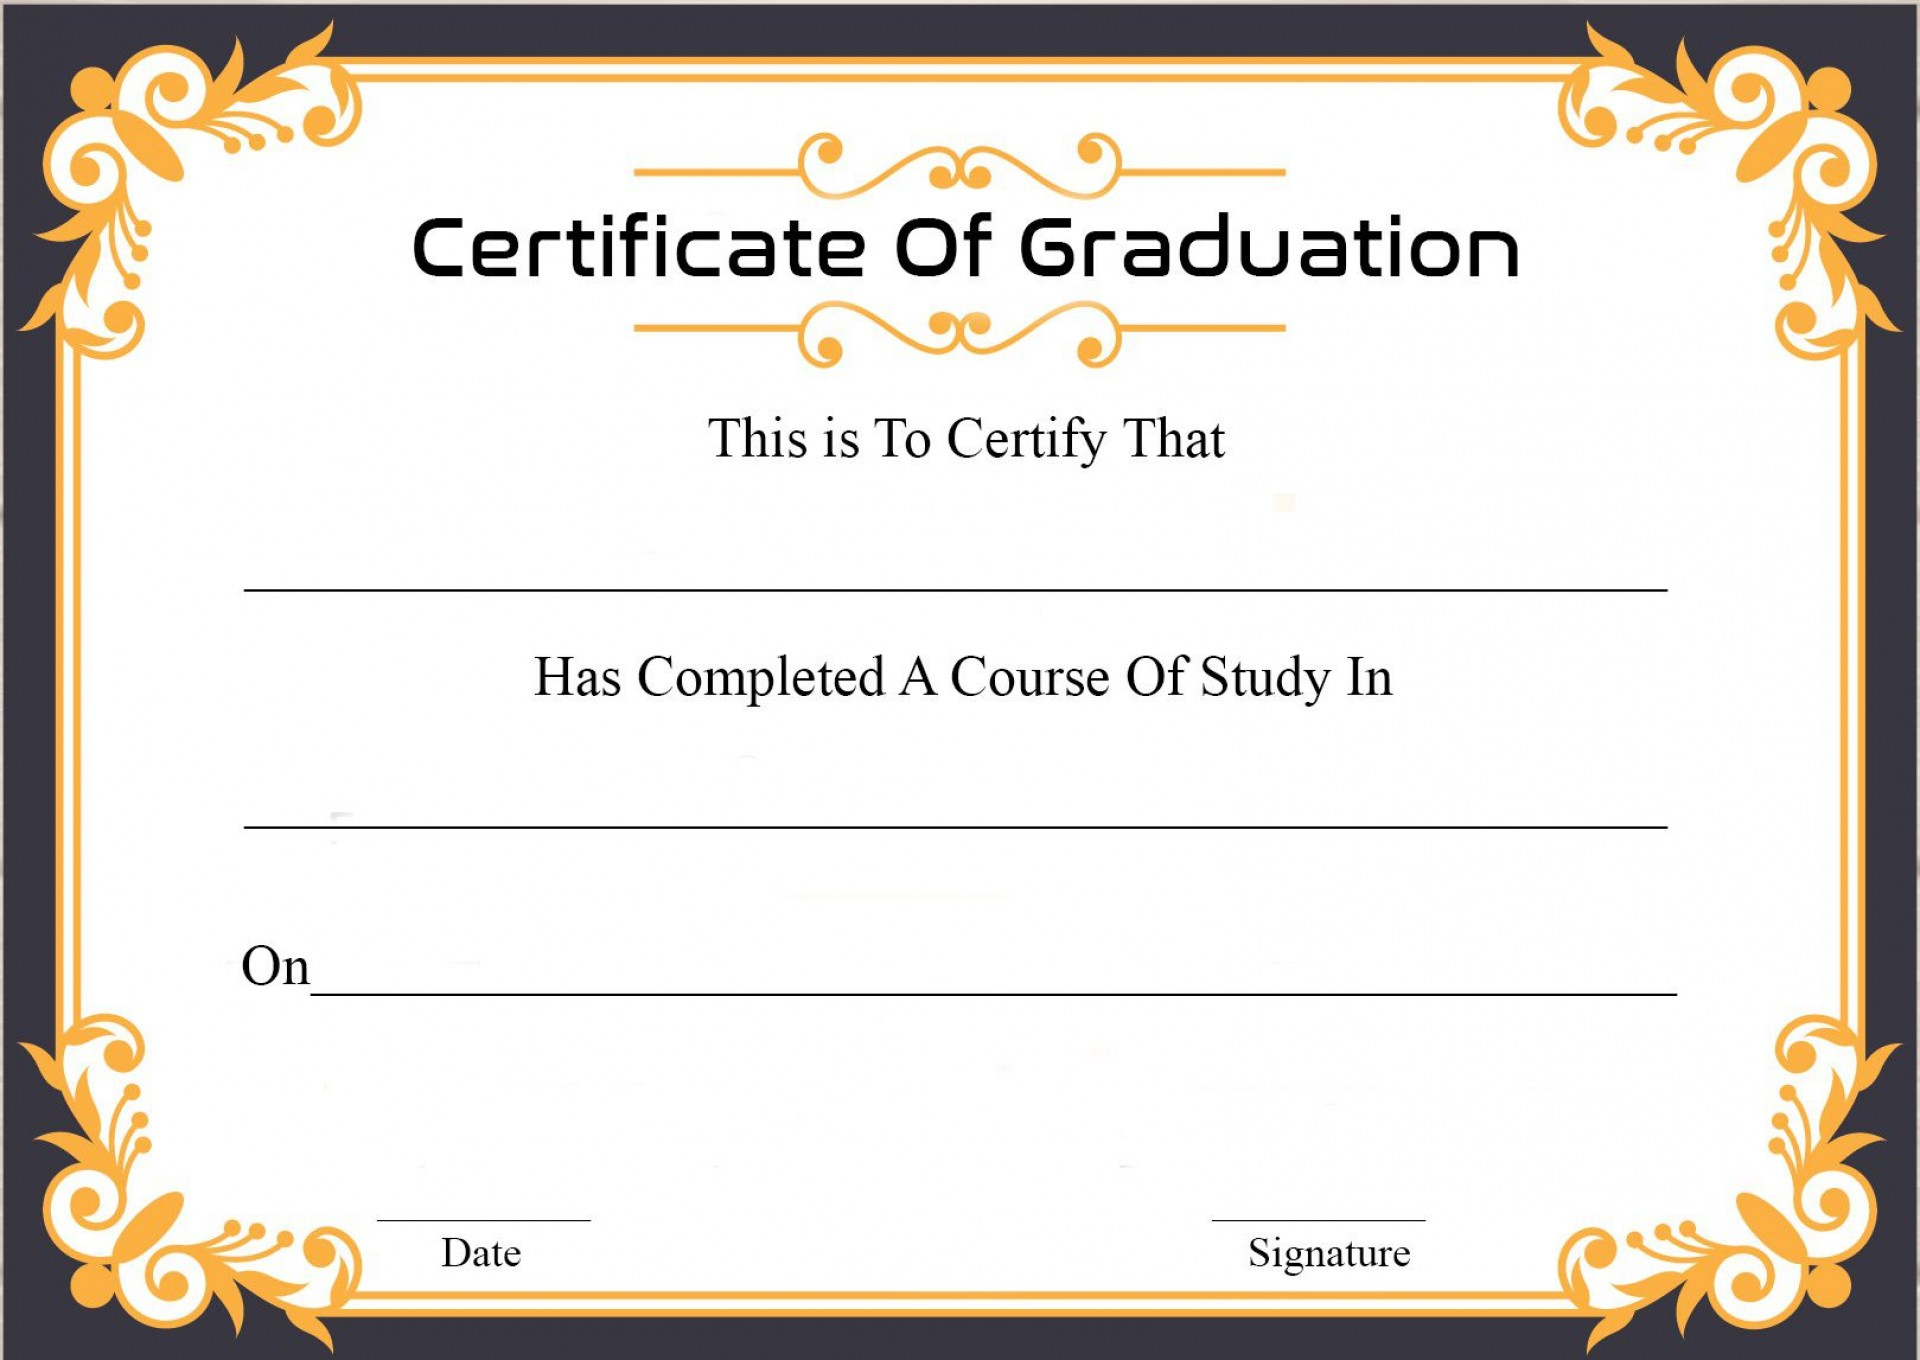 009 Archaicawful Graduation Certificate Template Word Sample  Wording Example Preschool Gift1920